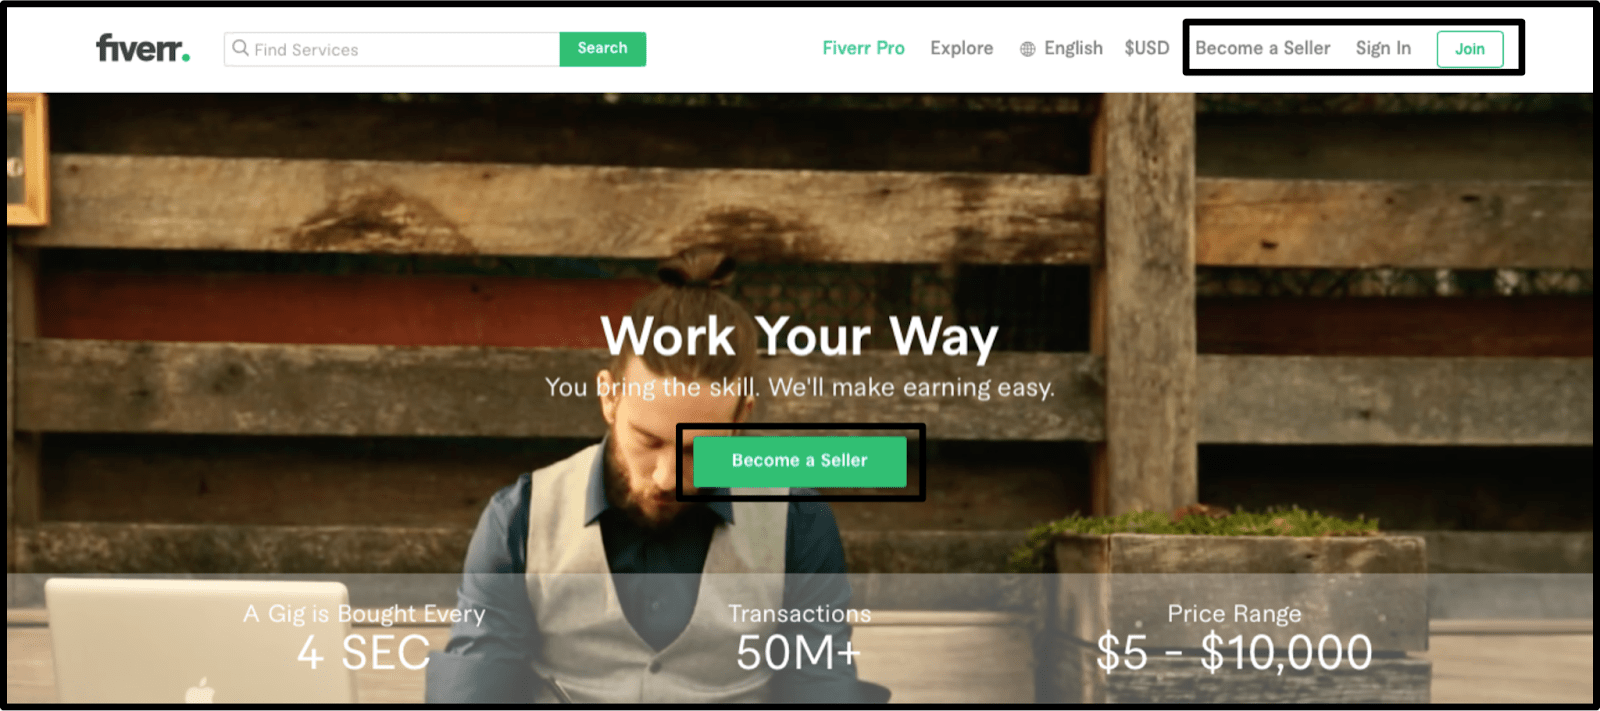 Fiverr homepage - Become a seller button